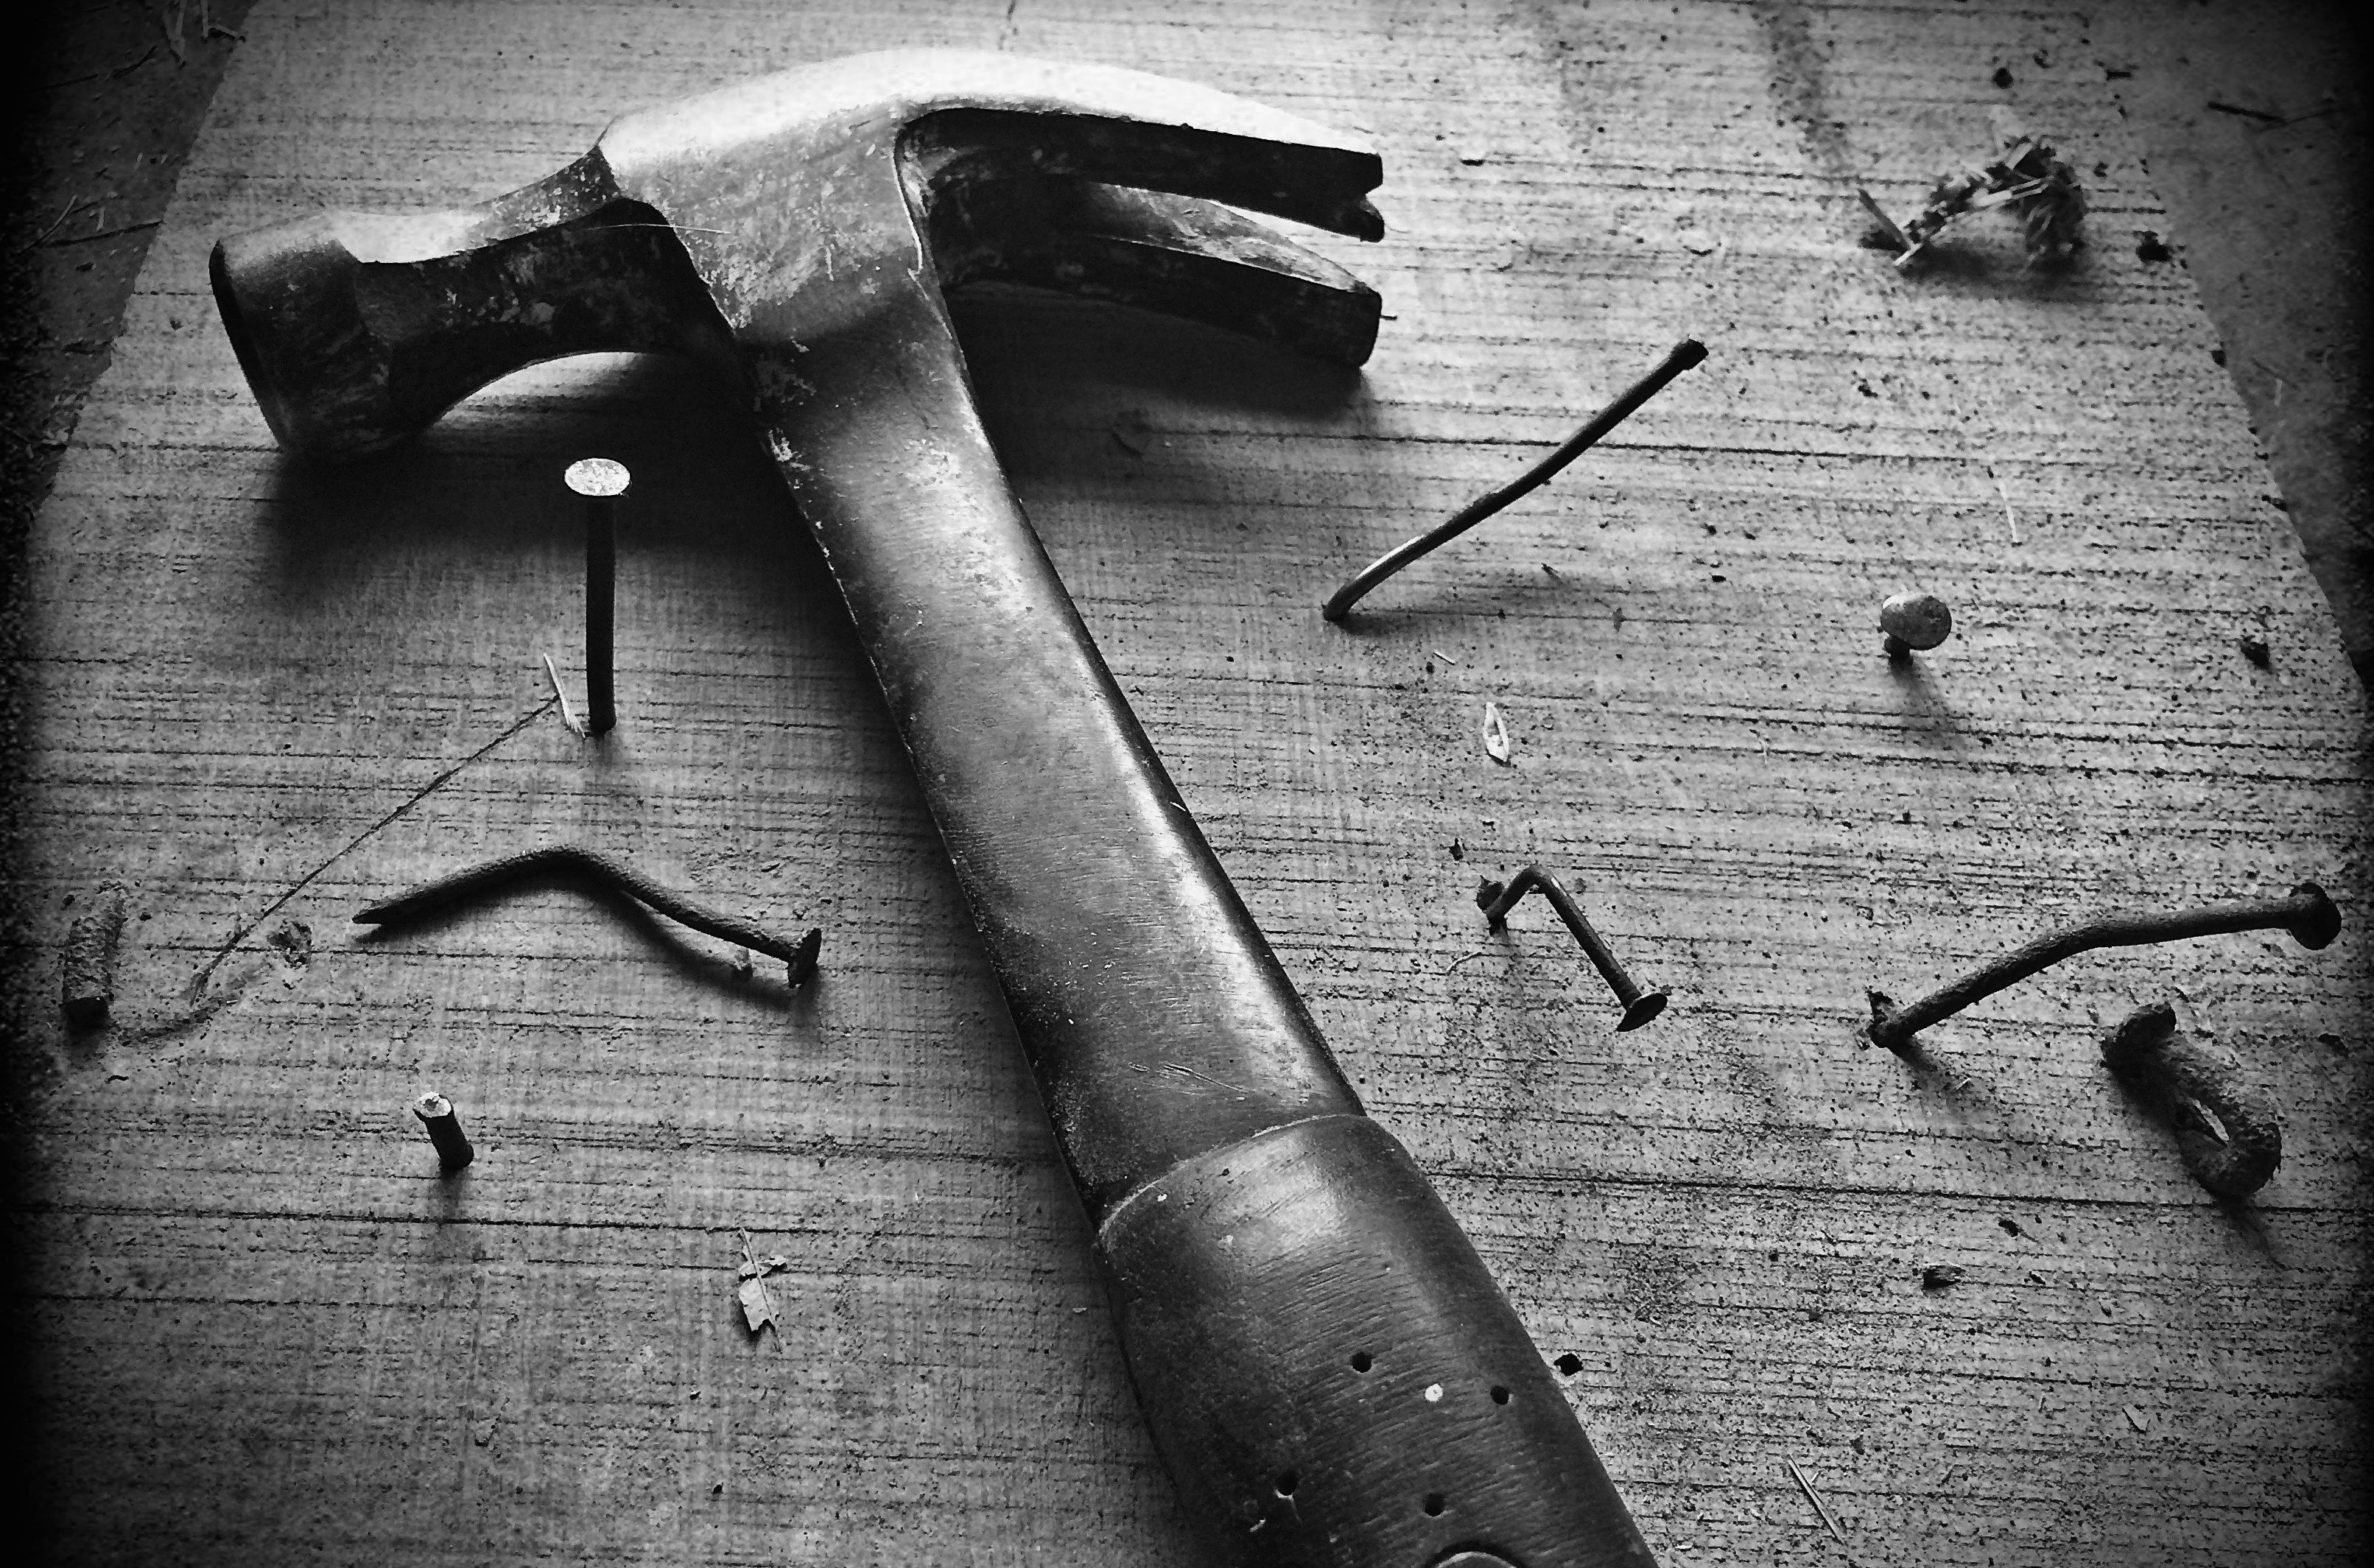 Hammer lying on wooden board with several bent nails in